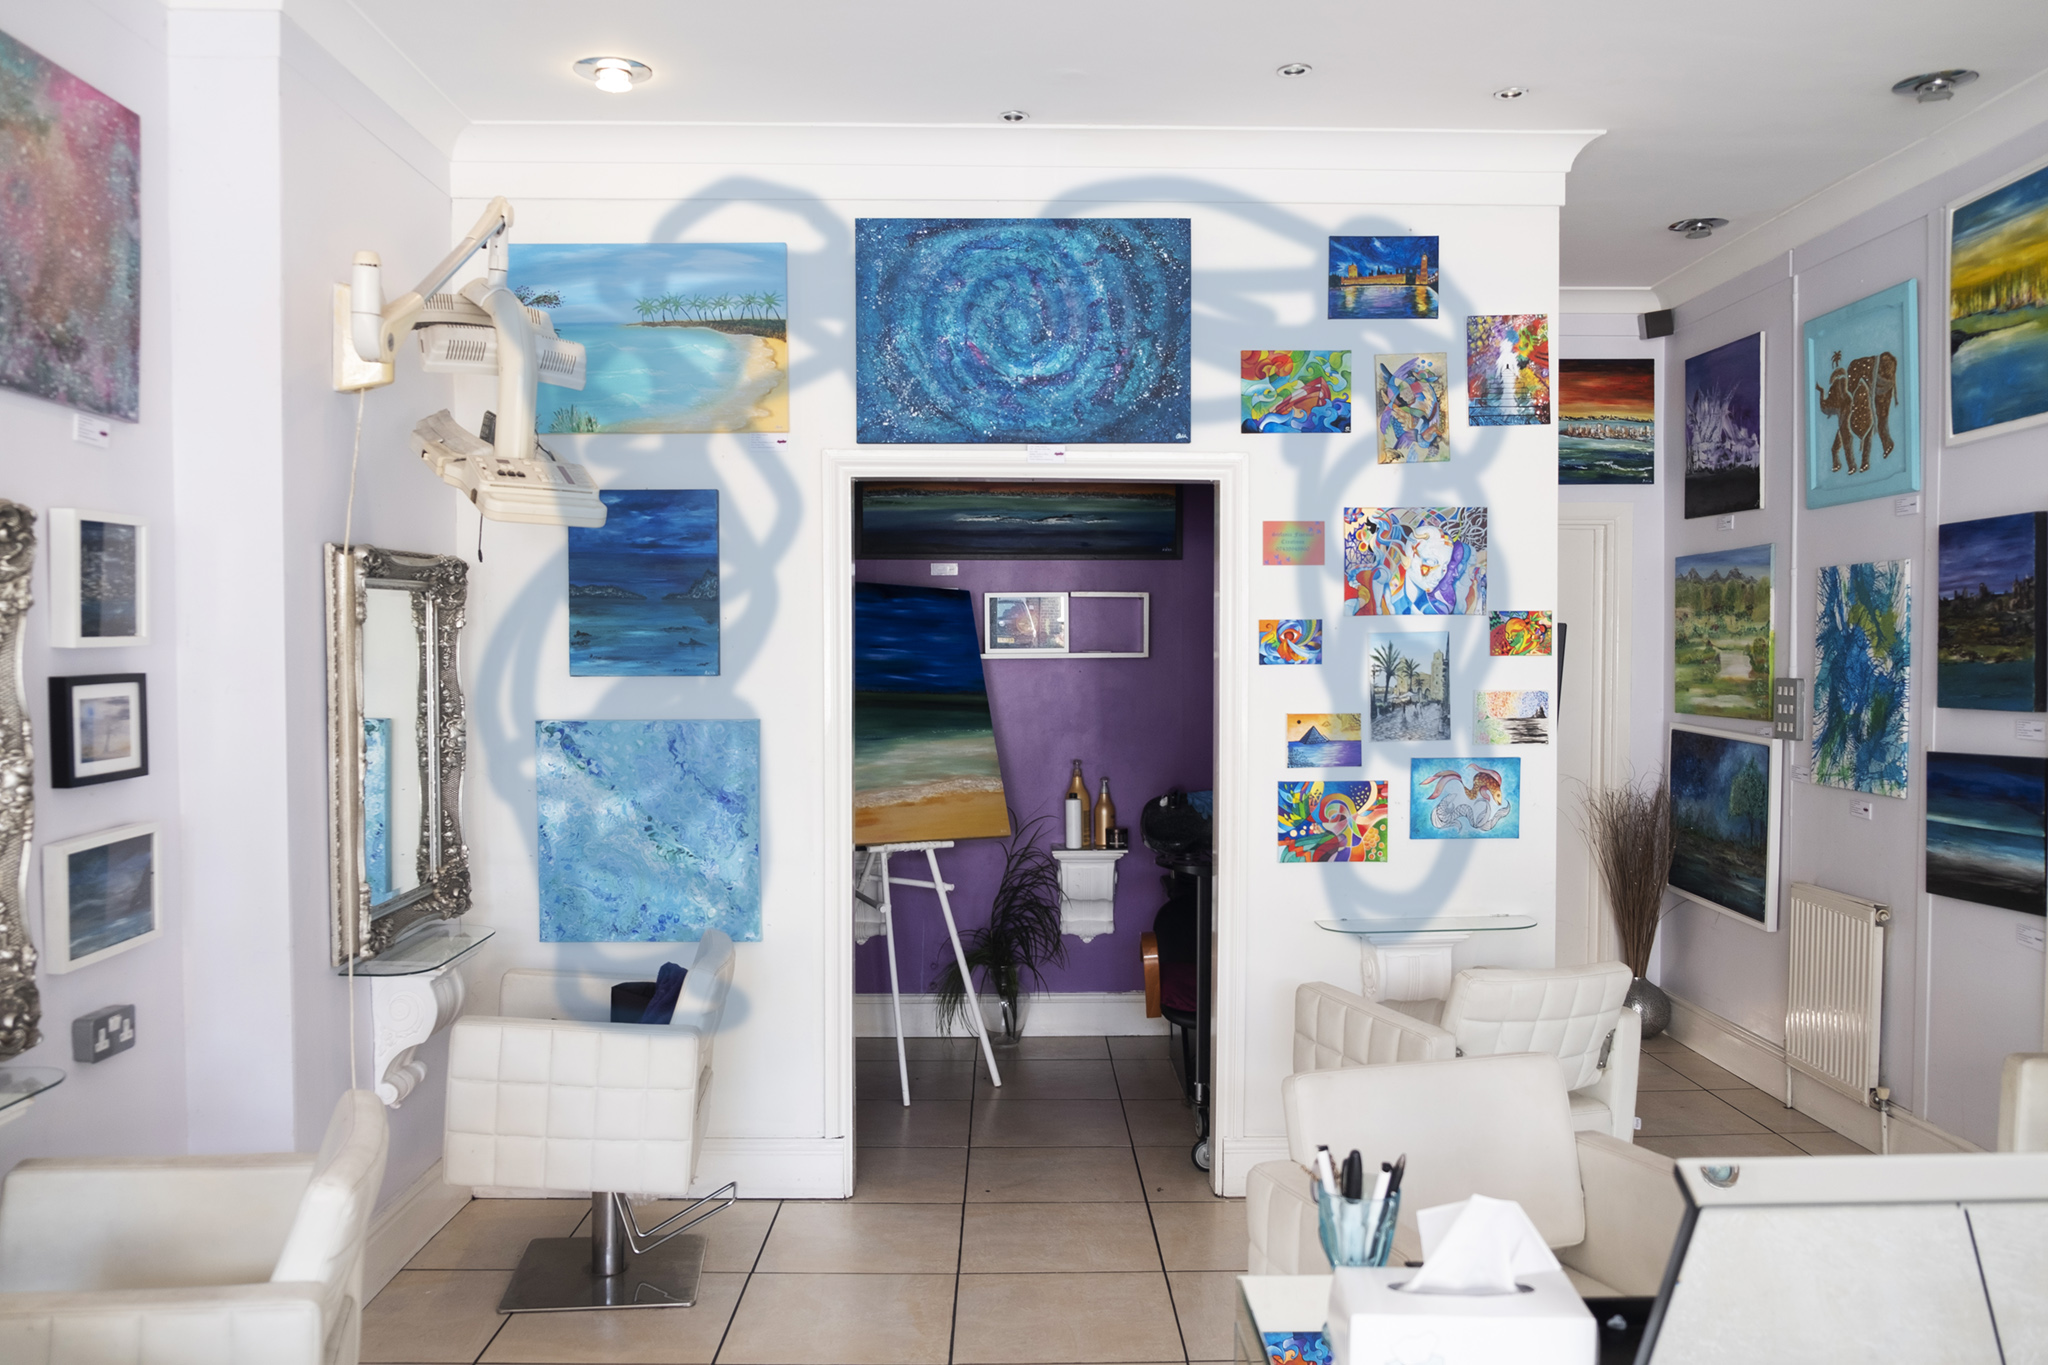 Second wall at La Zaris also available for hang, area indicated by blue brush strokes